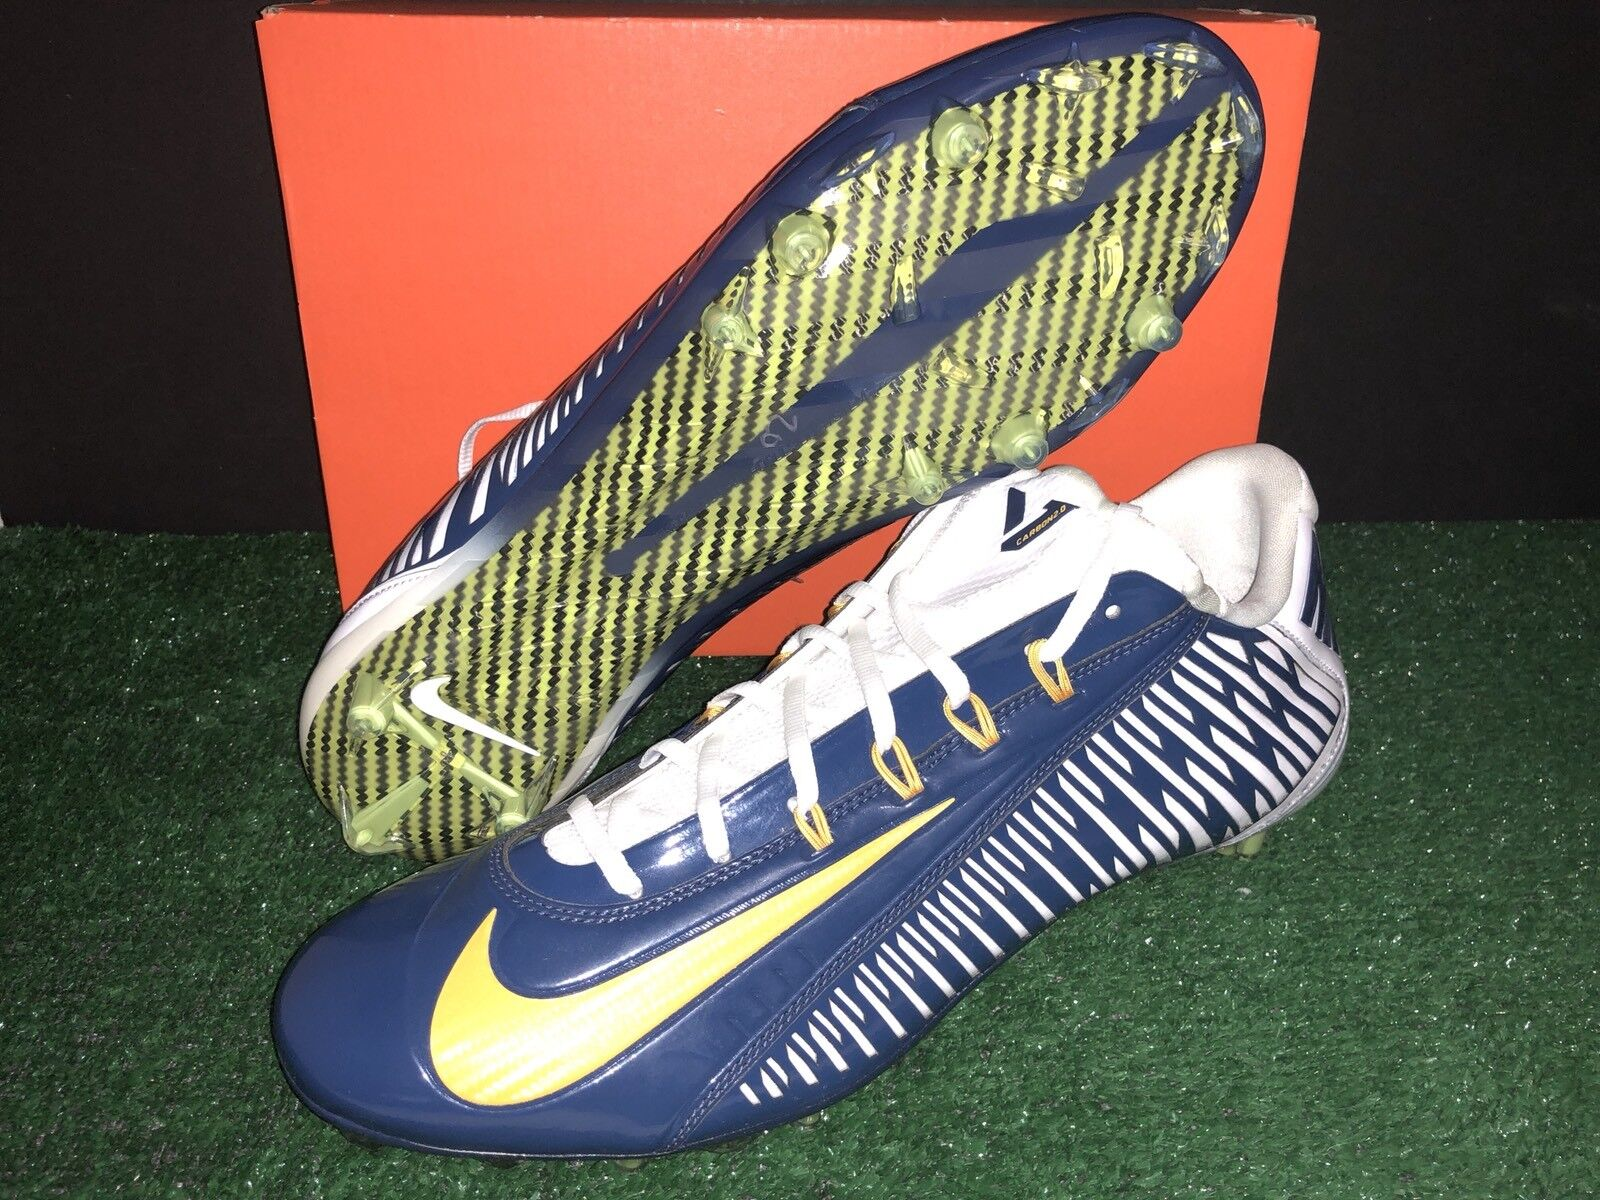 NIKE VAPOR CARBON 2.0 ELITE FOOTBALL CLEATS CHARGERS NAVY GOLD MEN'S SIZE 16 Cheap and beautiful fashion